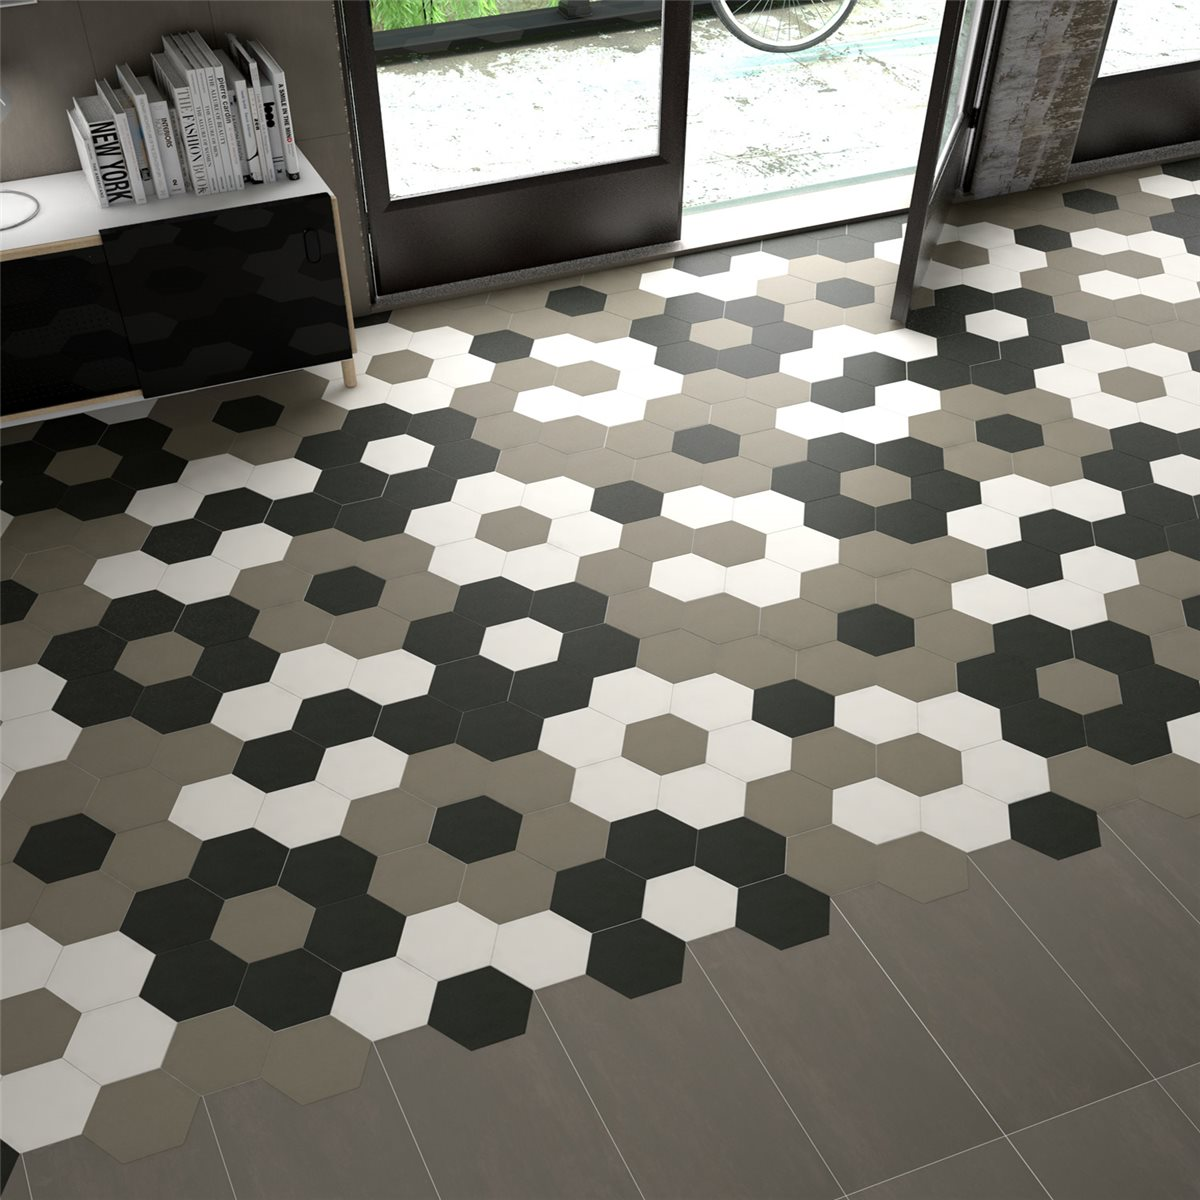 Glass mosaic wall floor tiles shop hexagon floor tiles angle dailygadgetfo Image collections